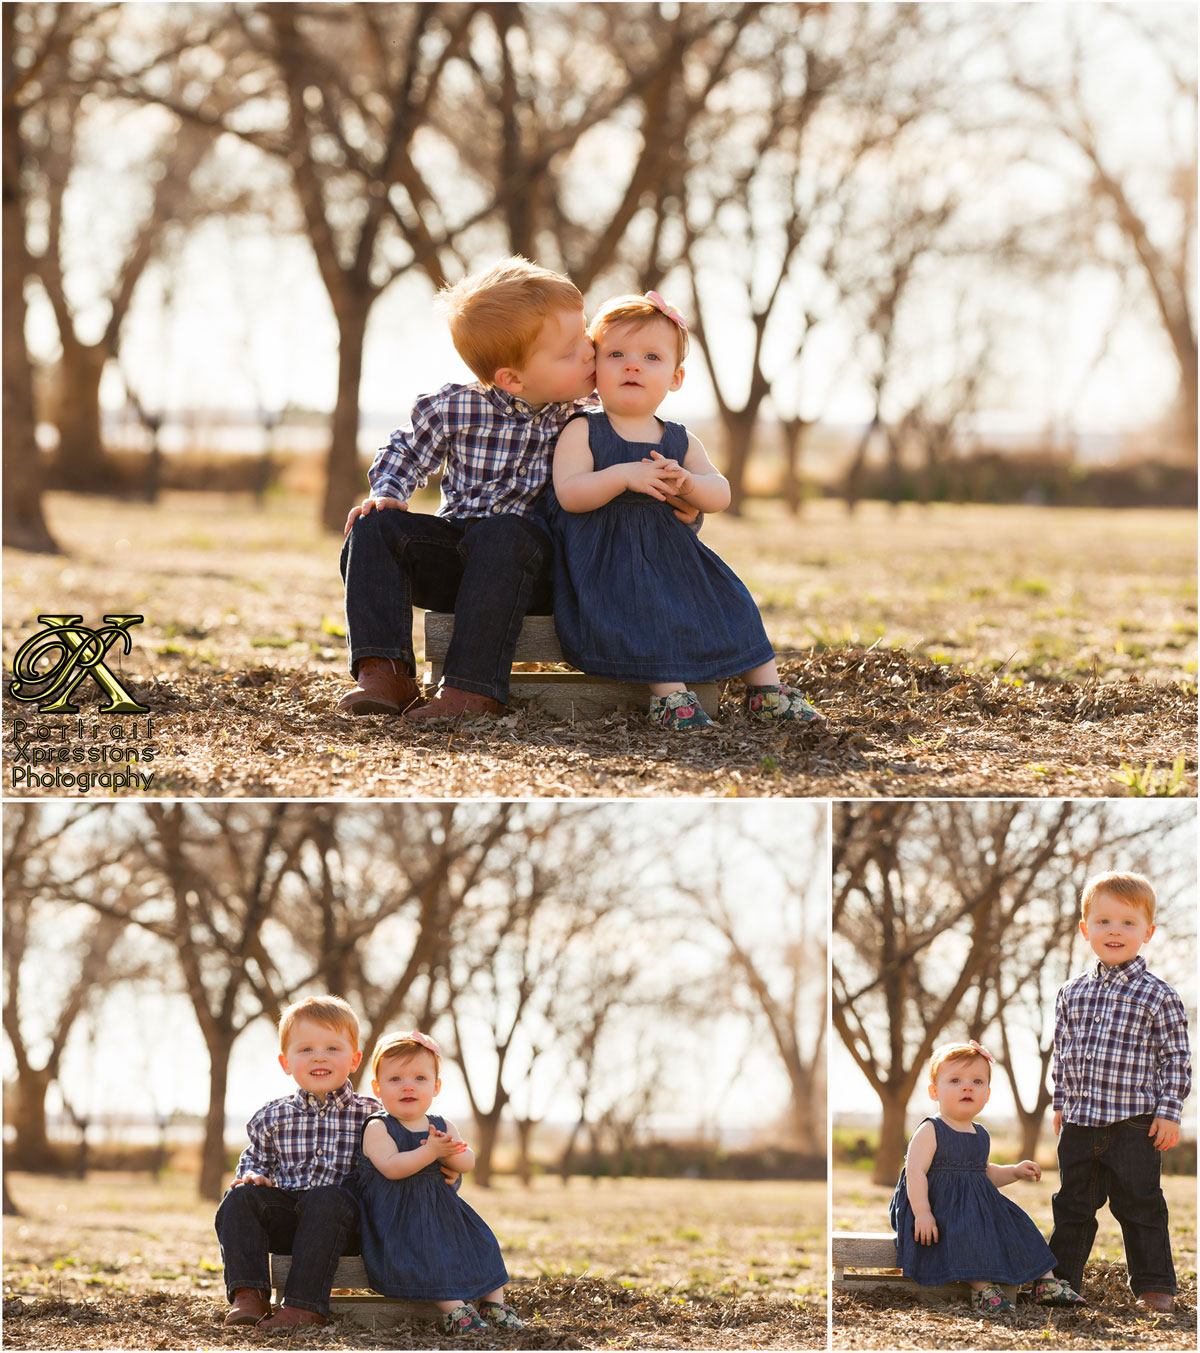 baby Joley with older brother kiss in outdoor session.